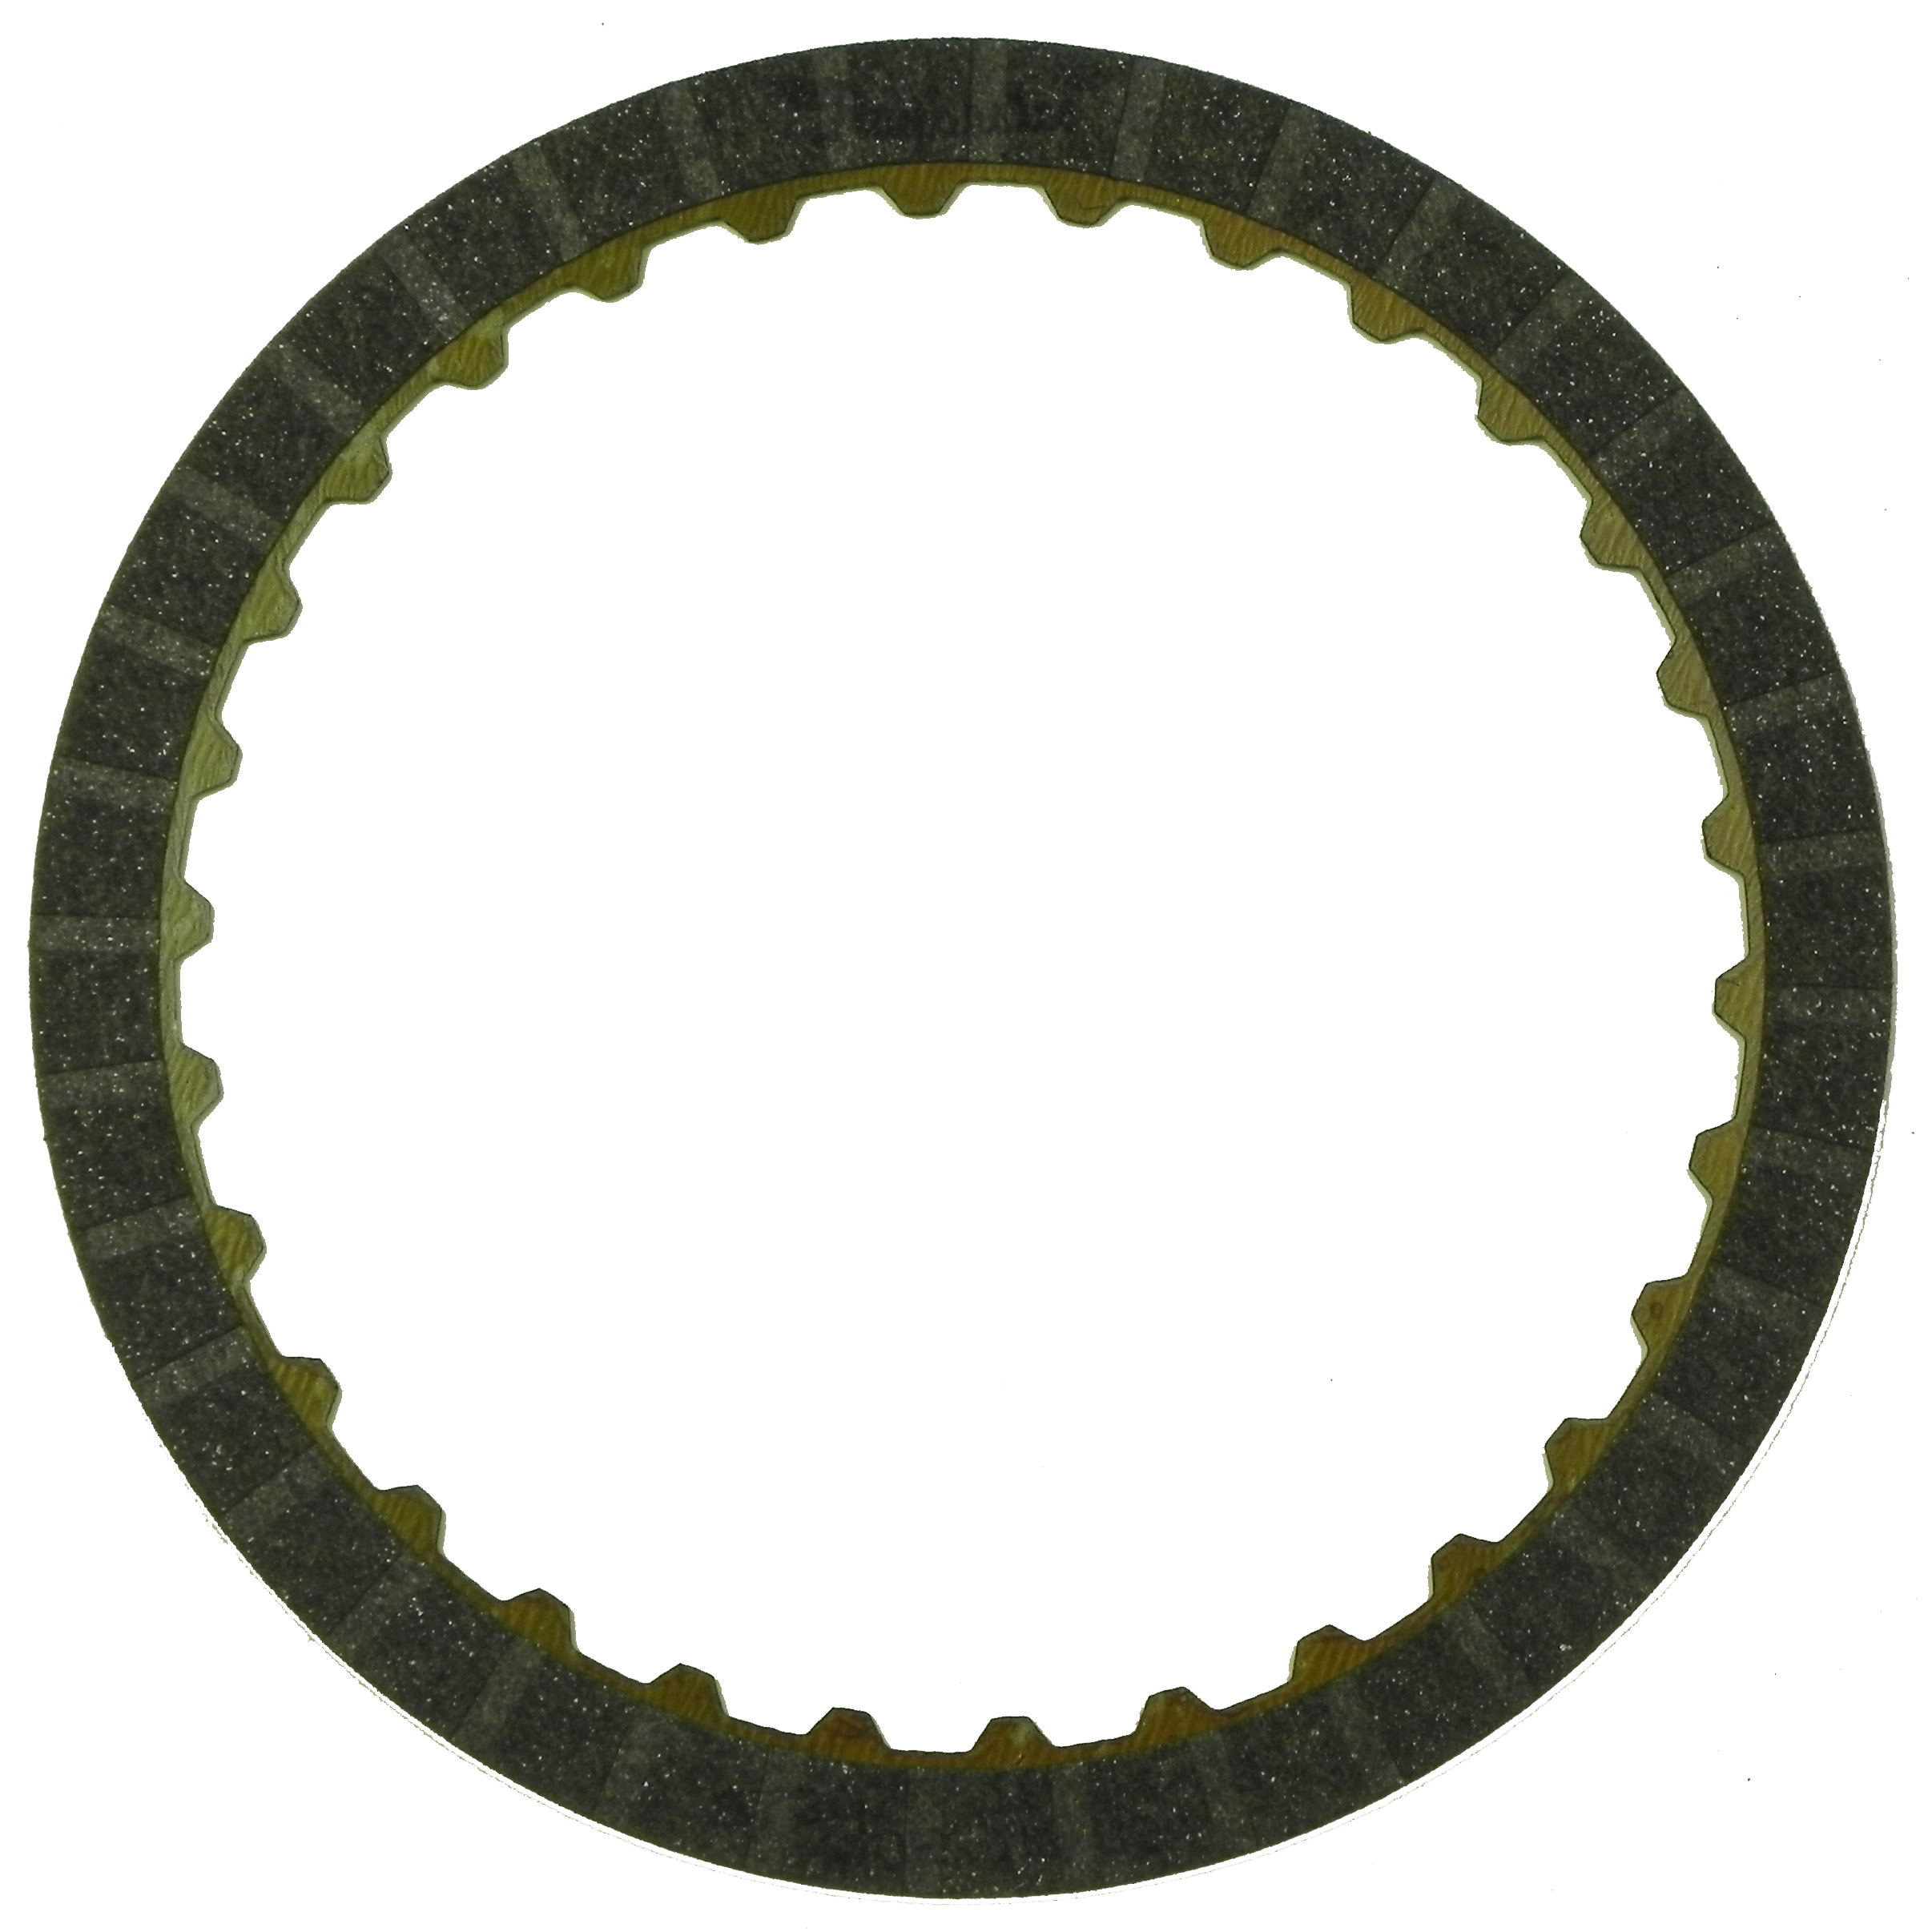 R572675 | 2004-ON Friction Clutch Plate High Energy C3 Reverse High Energy